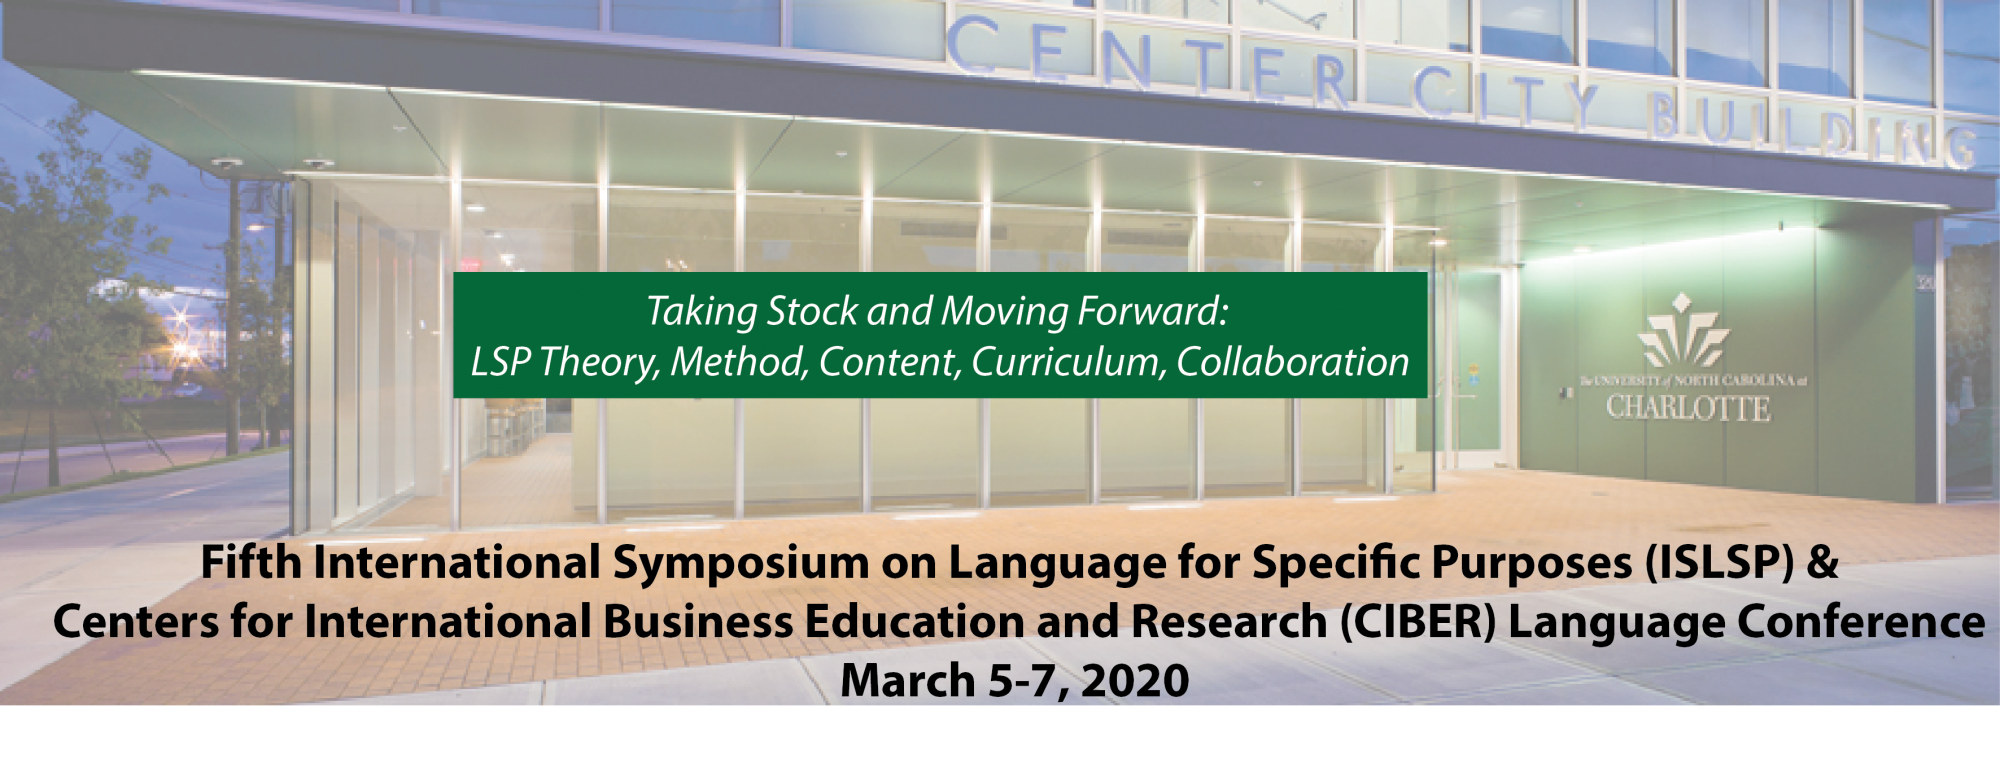 Uncc Academic Calendar 2020 5th ISLSP   CIBER Language Conference 2020 | Department of